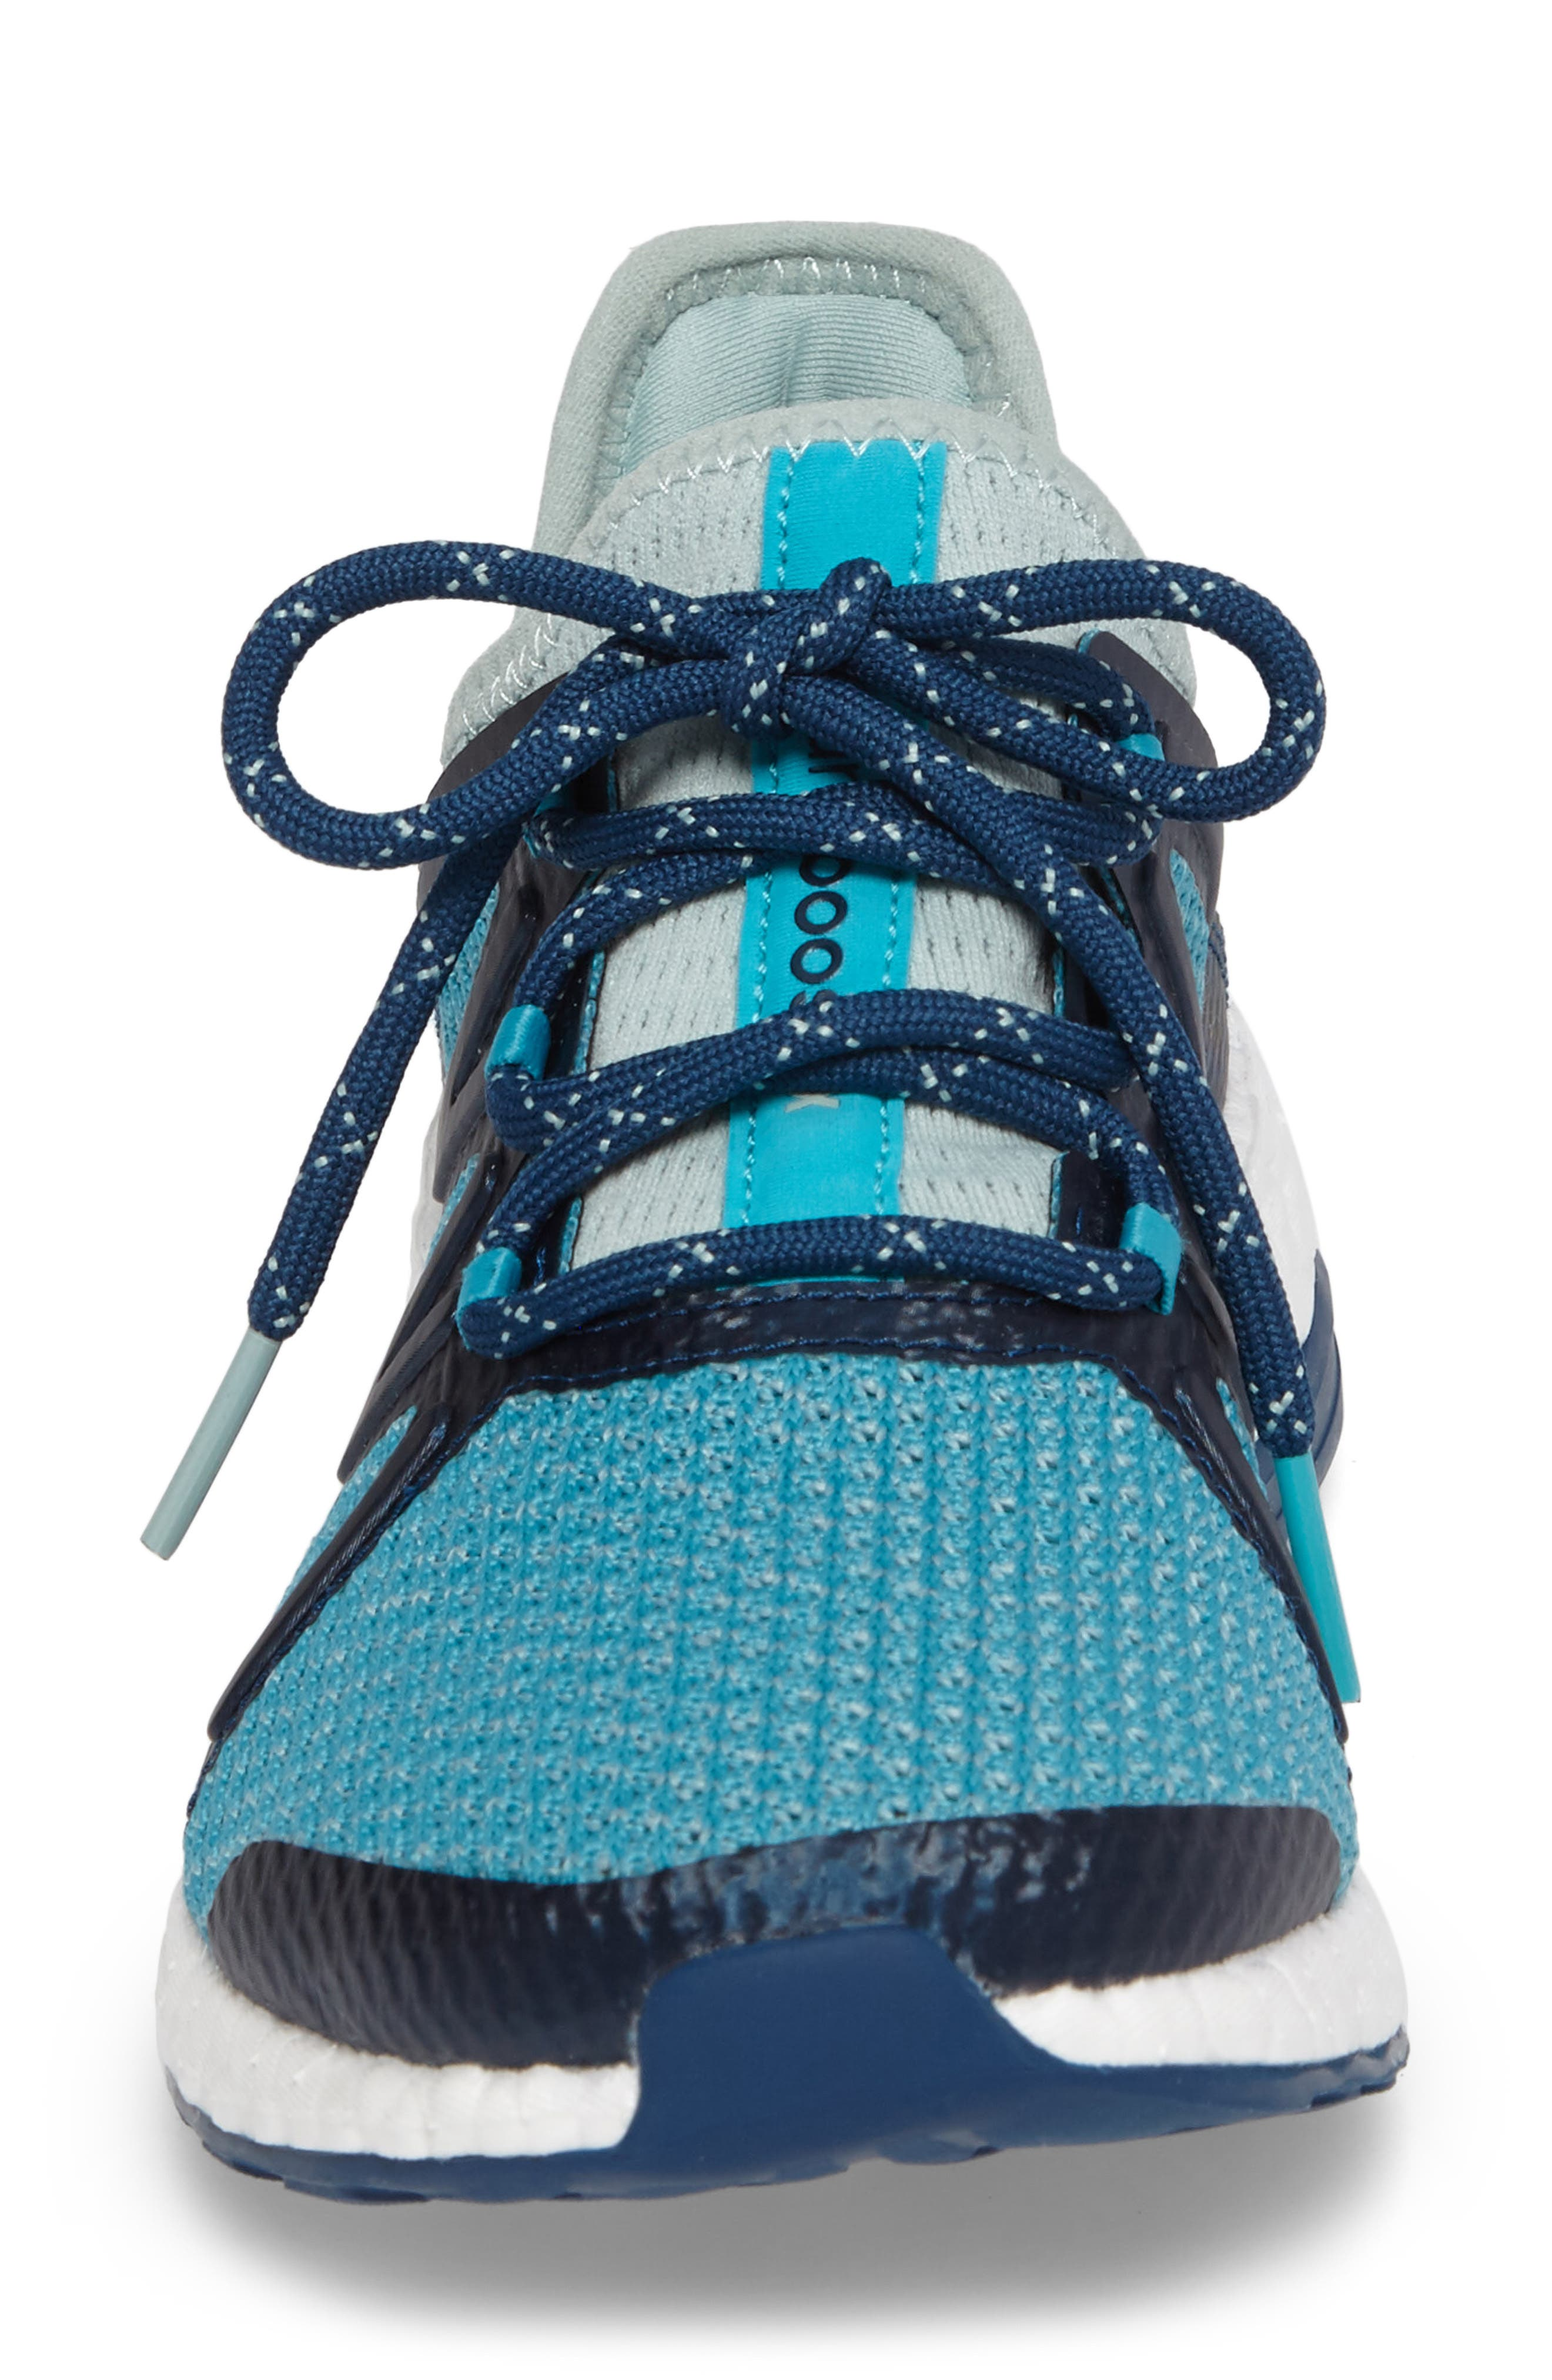 PureBOOST Xpose Running Shoe,                             Alternate thumbnail 2, color,                             Tactile Green/ Energy Blue